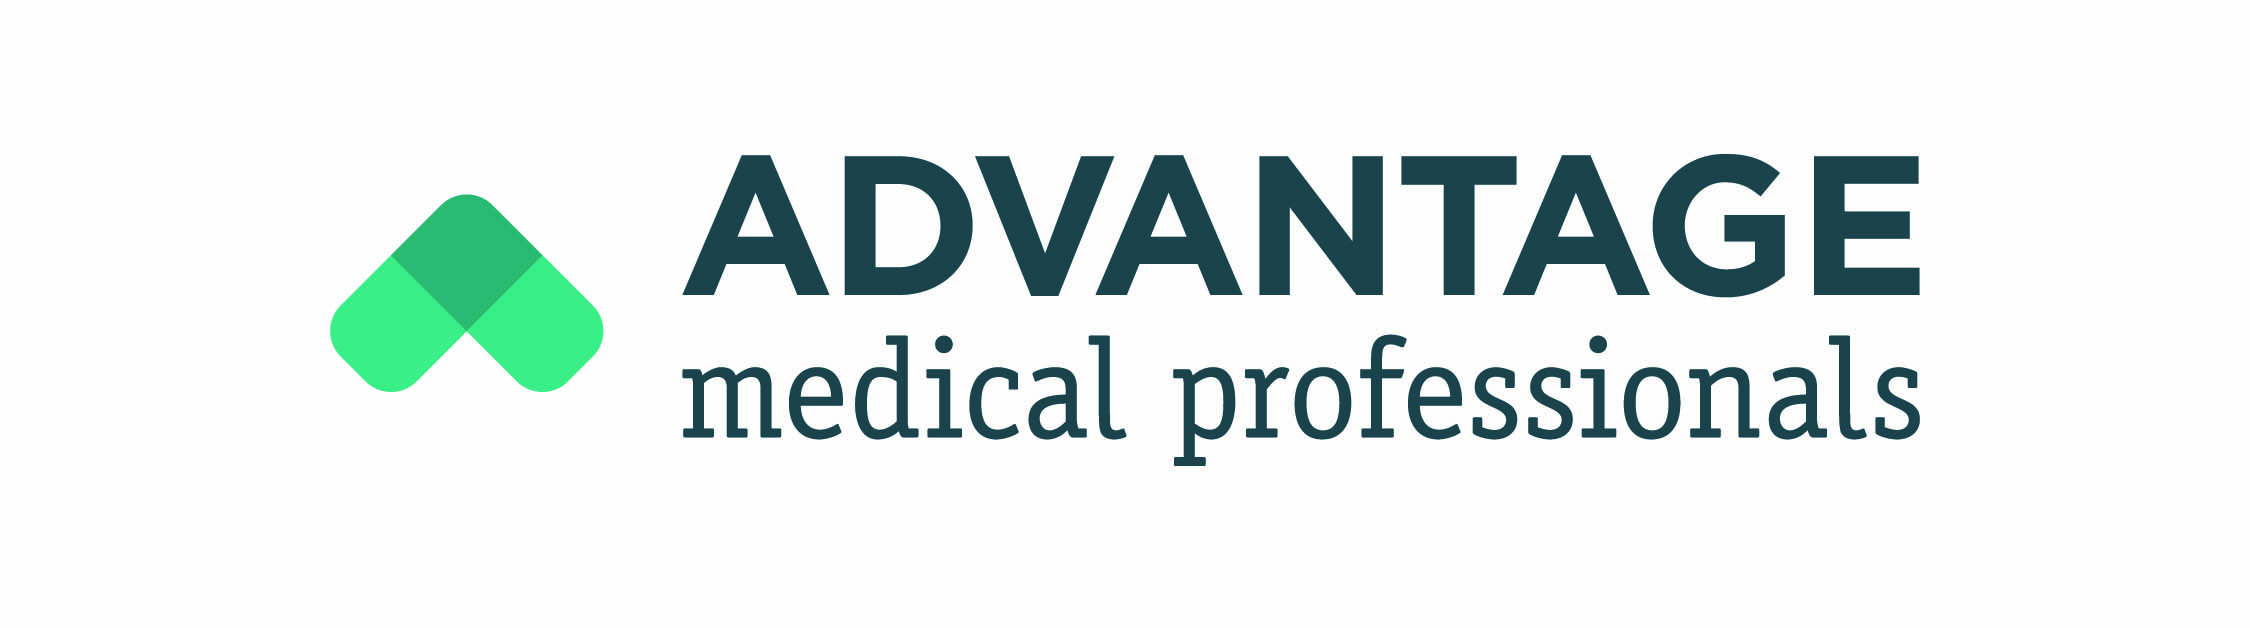 Advantage Medical Professionals